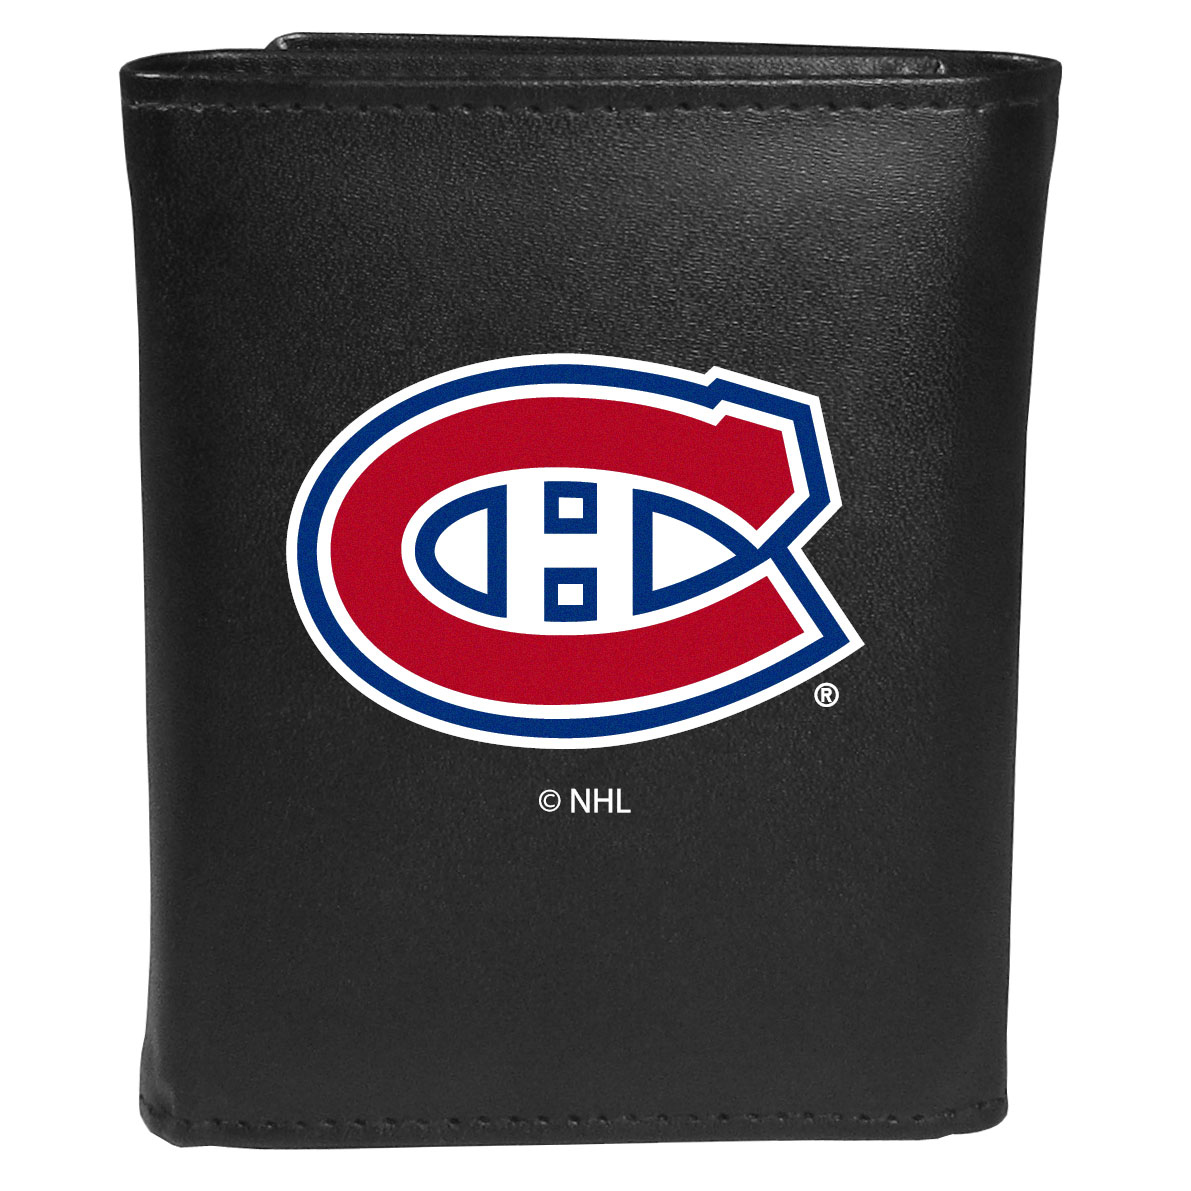 Montreal Canadiens® Leather Tri-fold Wallet, Large Logo - Our classic fine leather tri-fold wallet is meticulously crafted with genuine leather that will age beautifully so you will have a quality wallet for years to come. This is fan apparel at its finest. The wallet is packed with organizational  features; lots of credit card slots, large billfold pocket, and a window ID slot. The front of the wallet features an extra large Montreal Canadiens® printed logo.